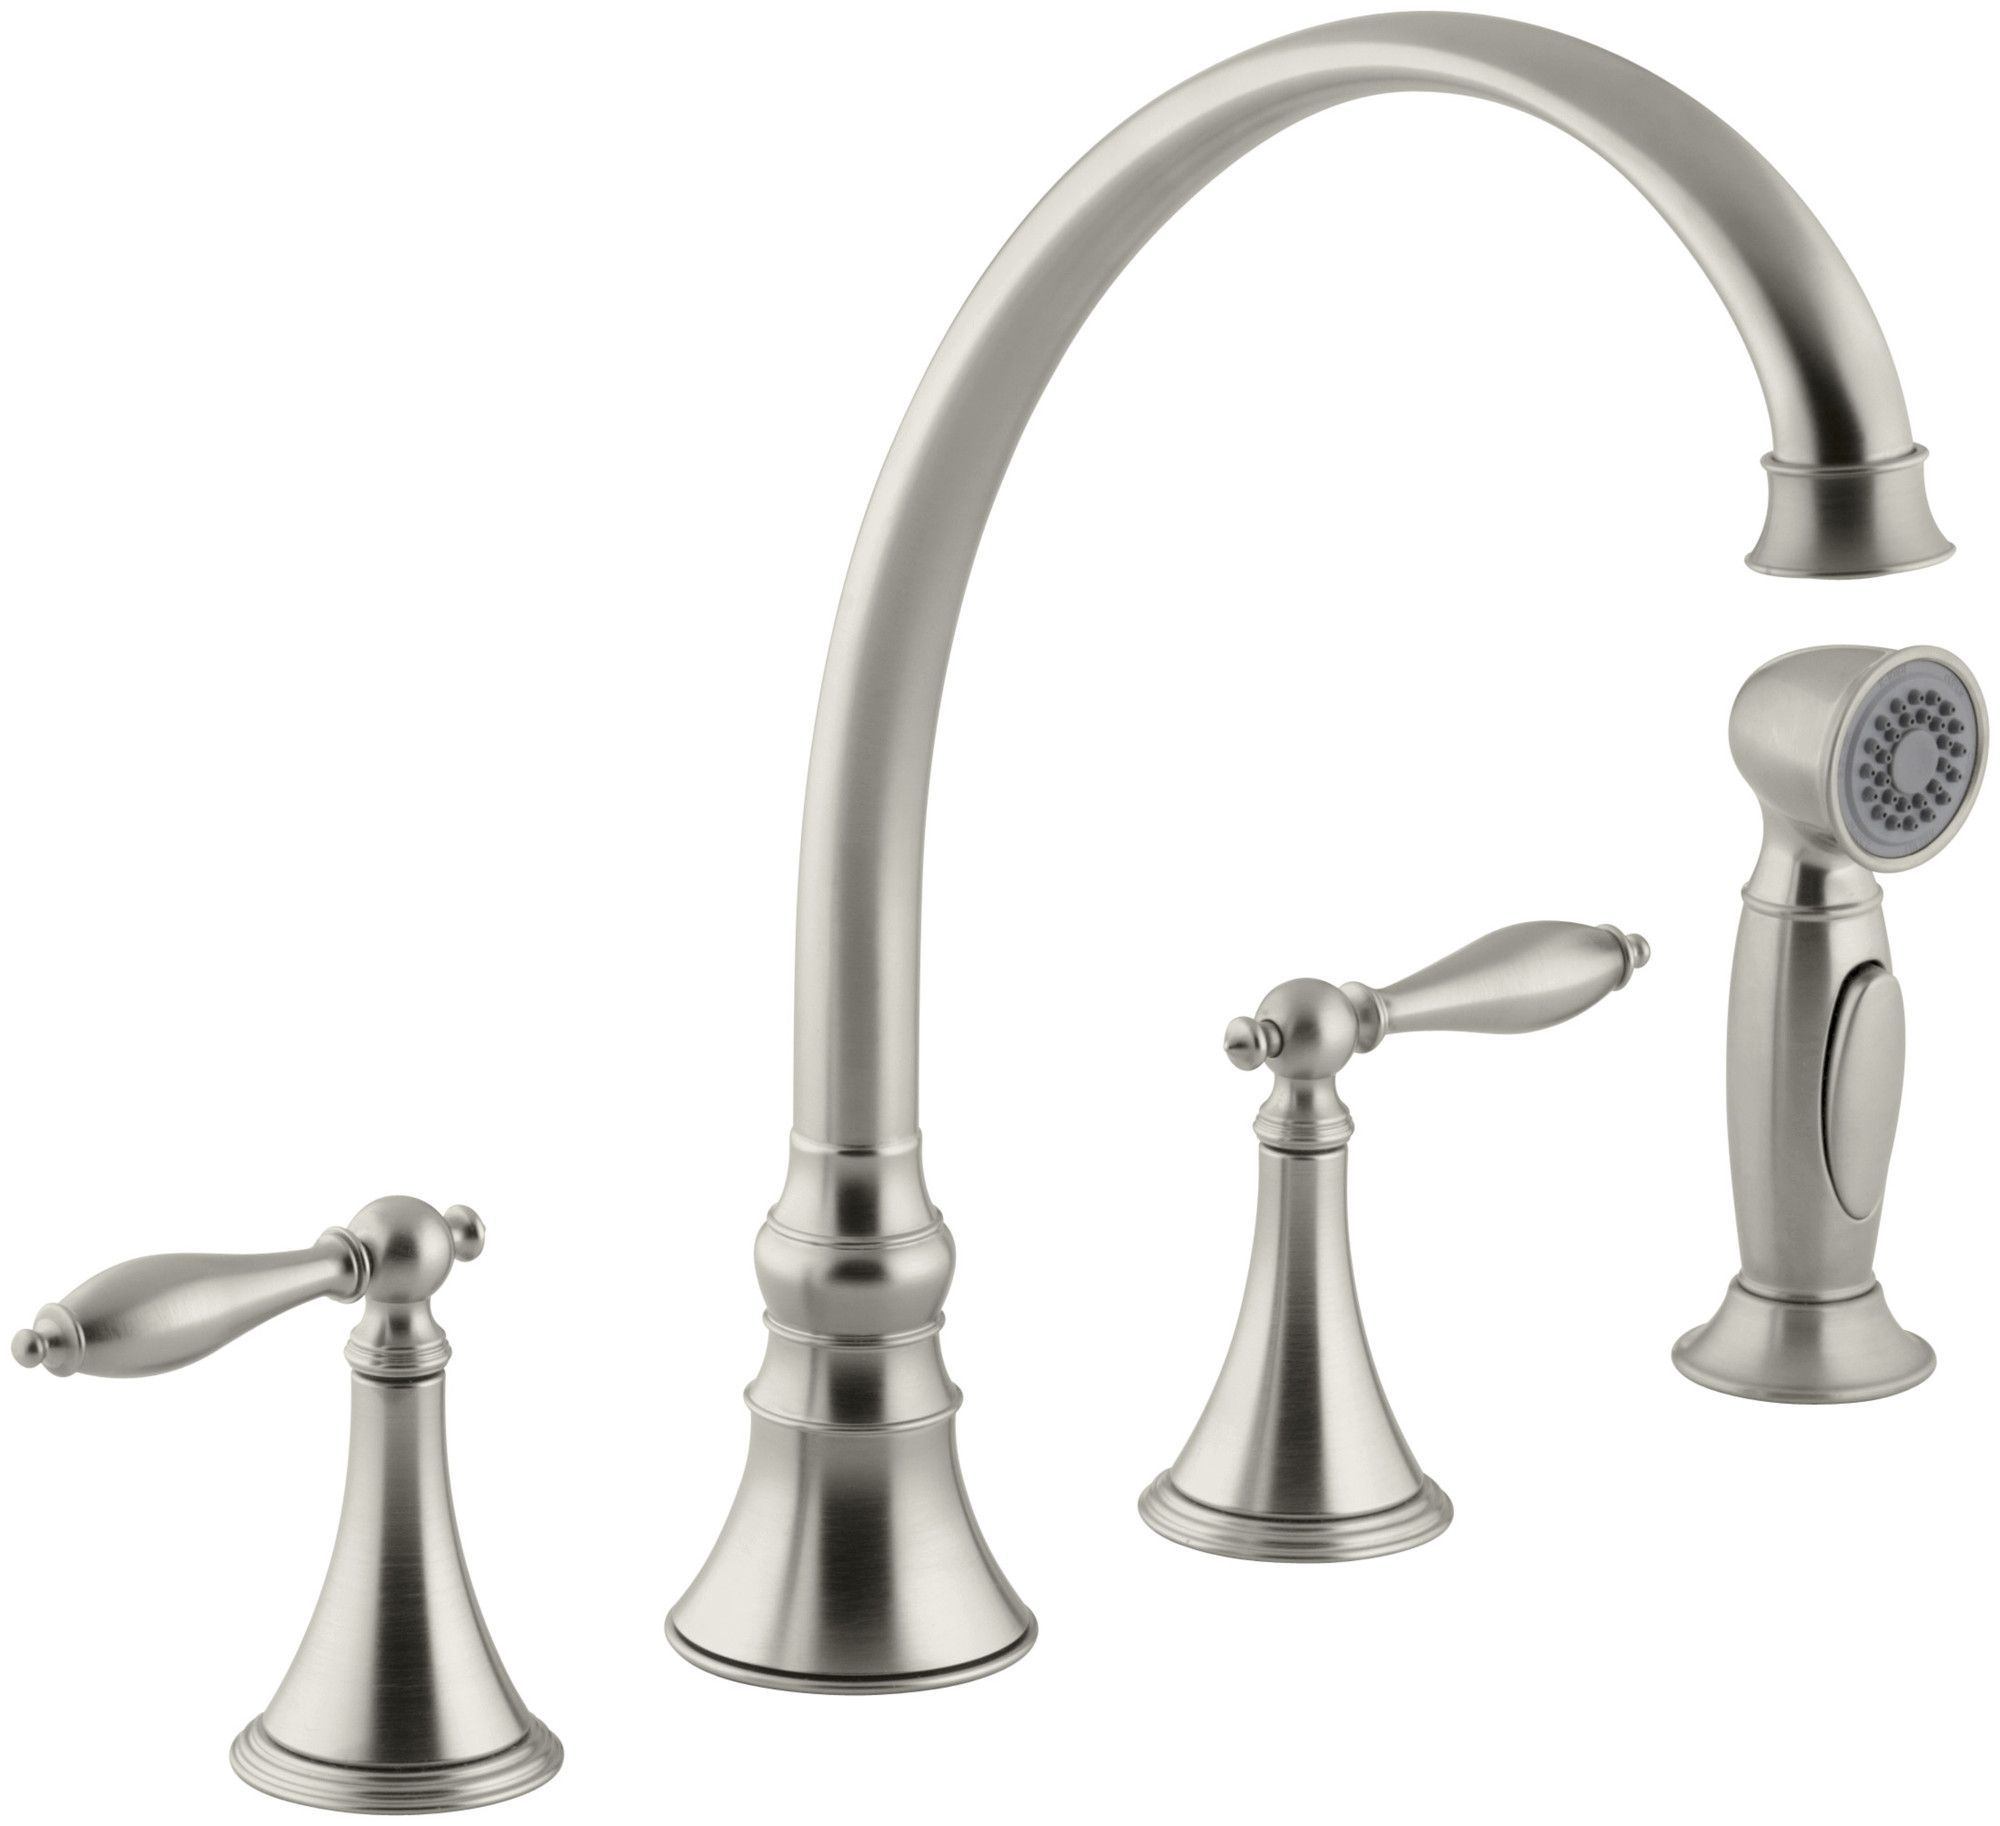 "Finial Traditional 4-Hole Kitchen Sink Faucet with 9-3/16"" Spout, Matching Finish Sidespray and Lever Handles"